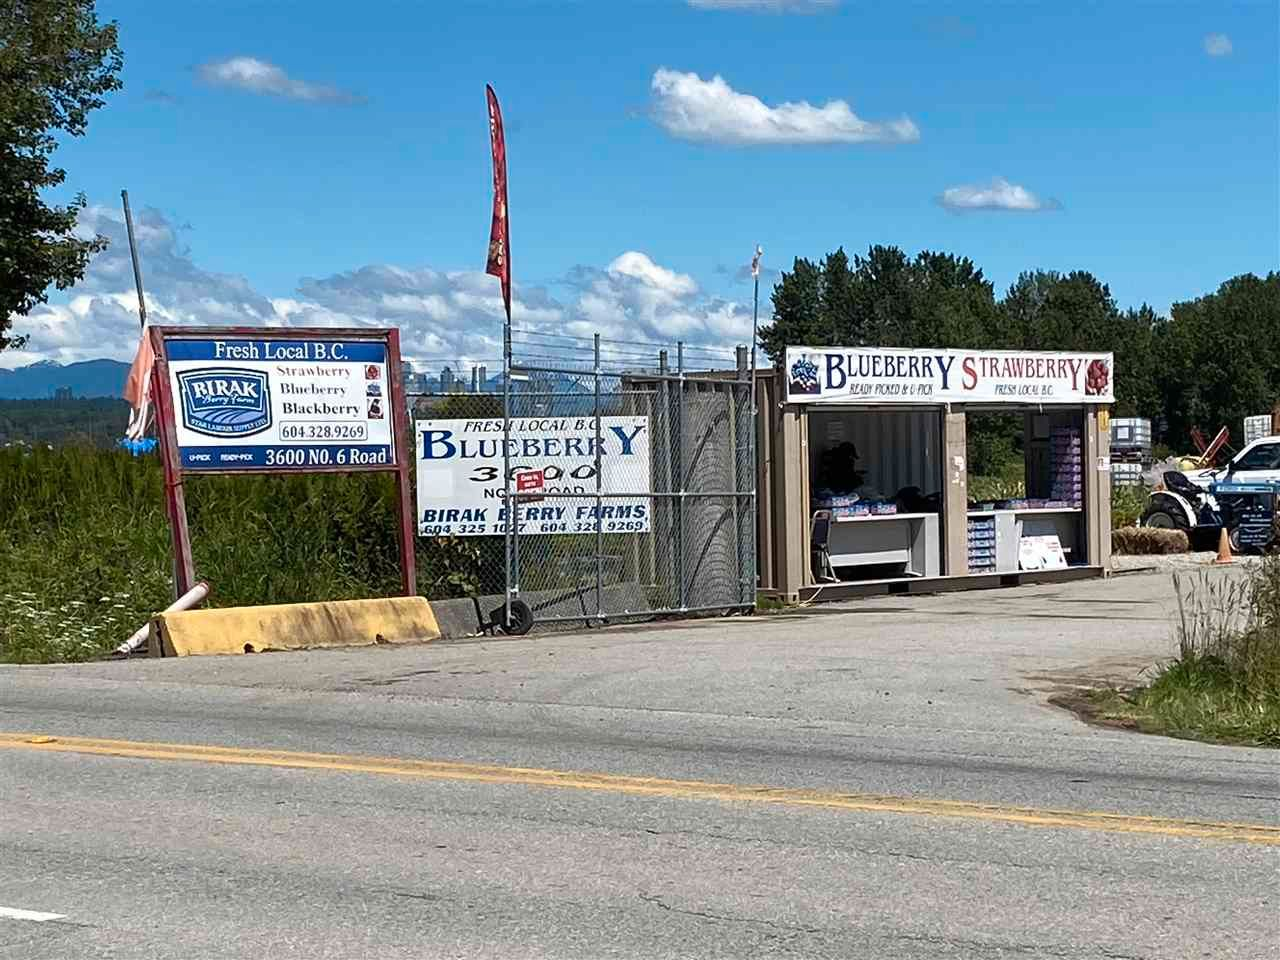 Main Photo: 3600 NO. 6 Road in Richmond: East Richmond Agri-Business for sale : MLS®# C8038837